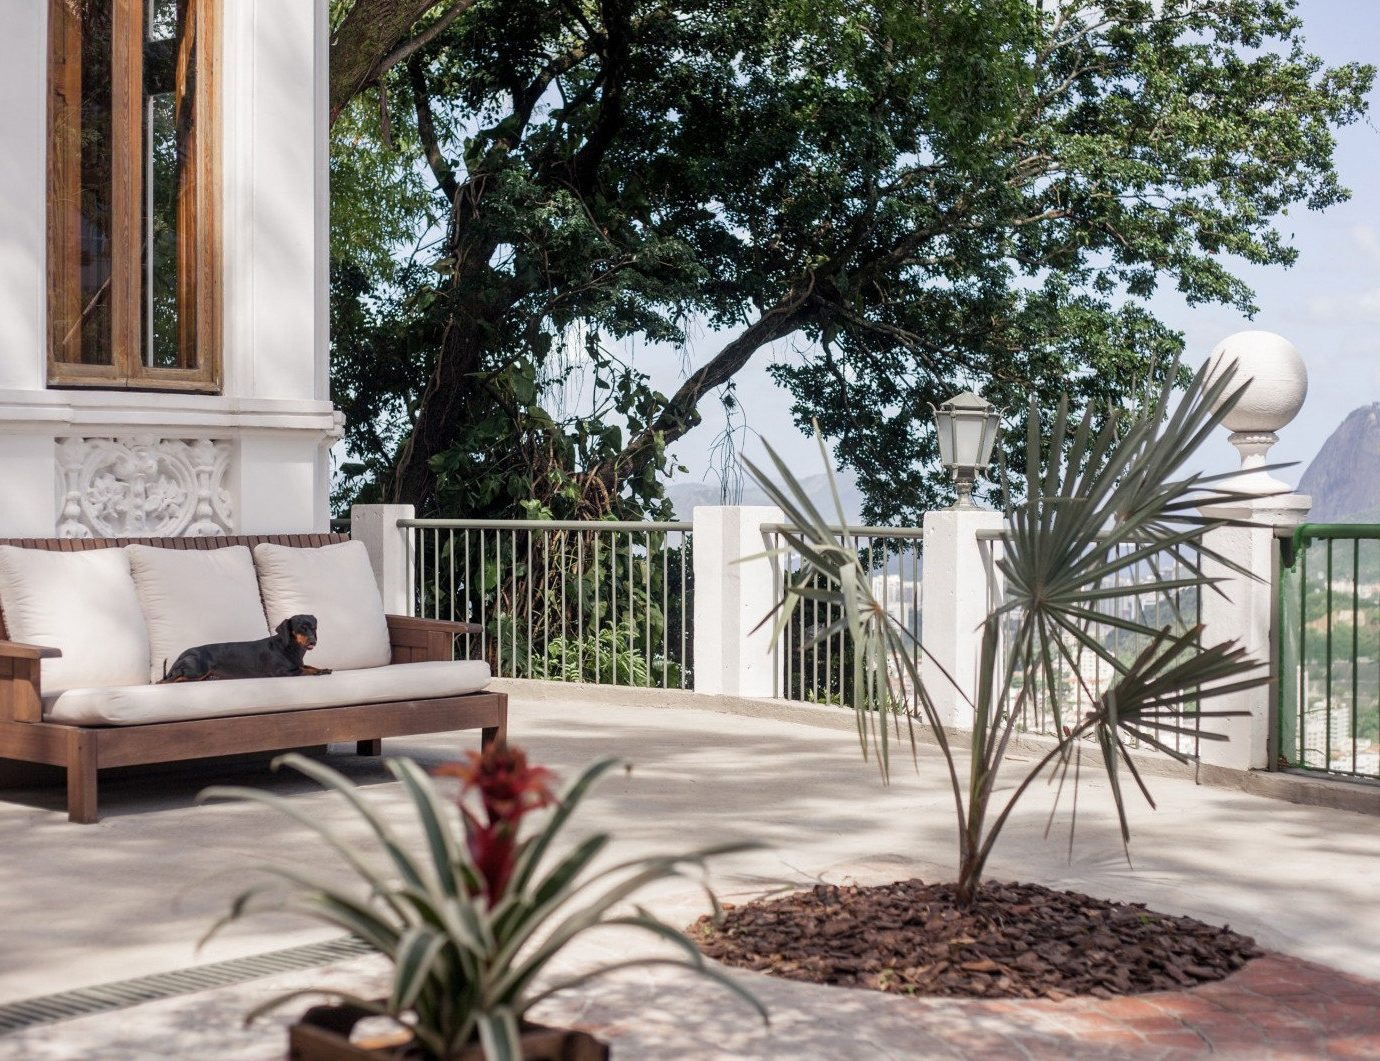 tree property home house backyard Courtyard porch Villa outdoor structure plant cottage yard mansion Garden